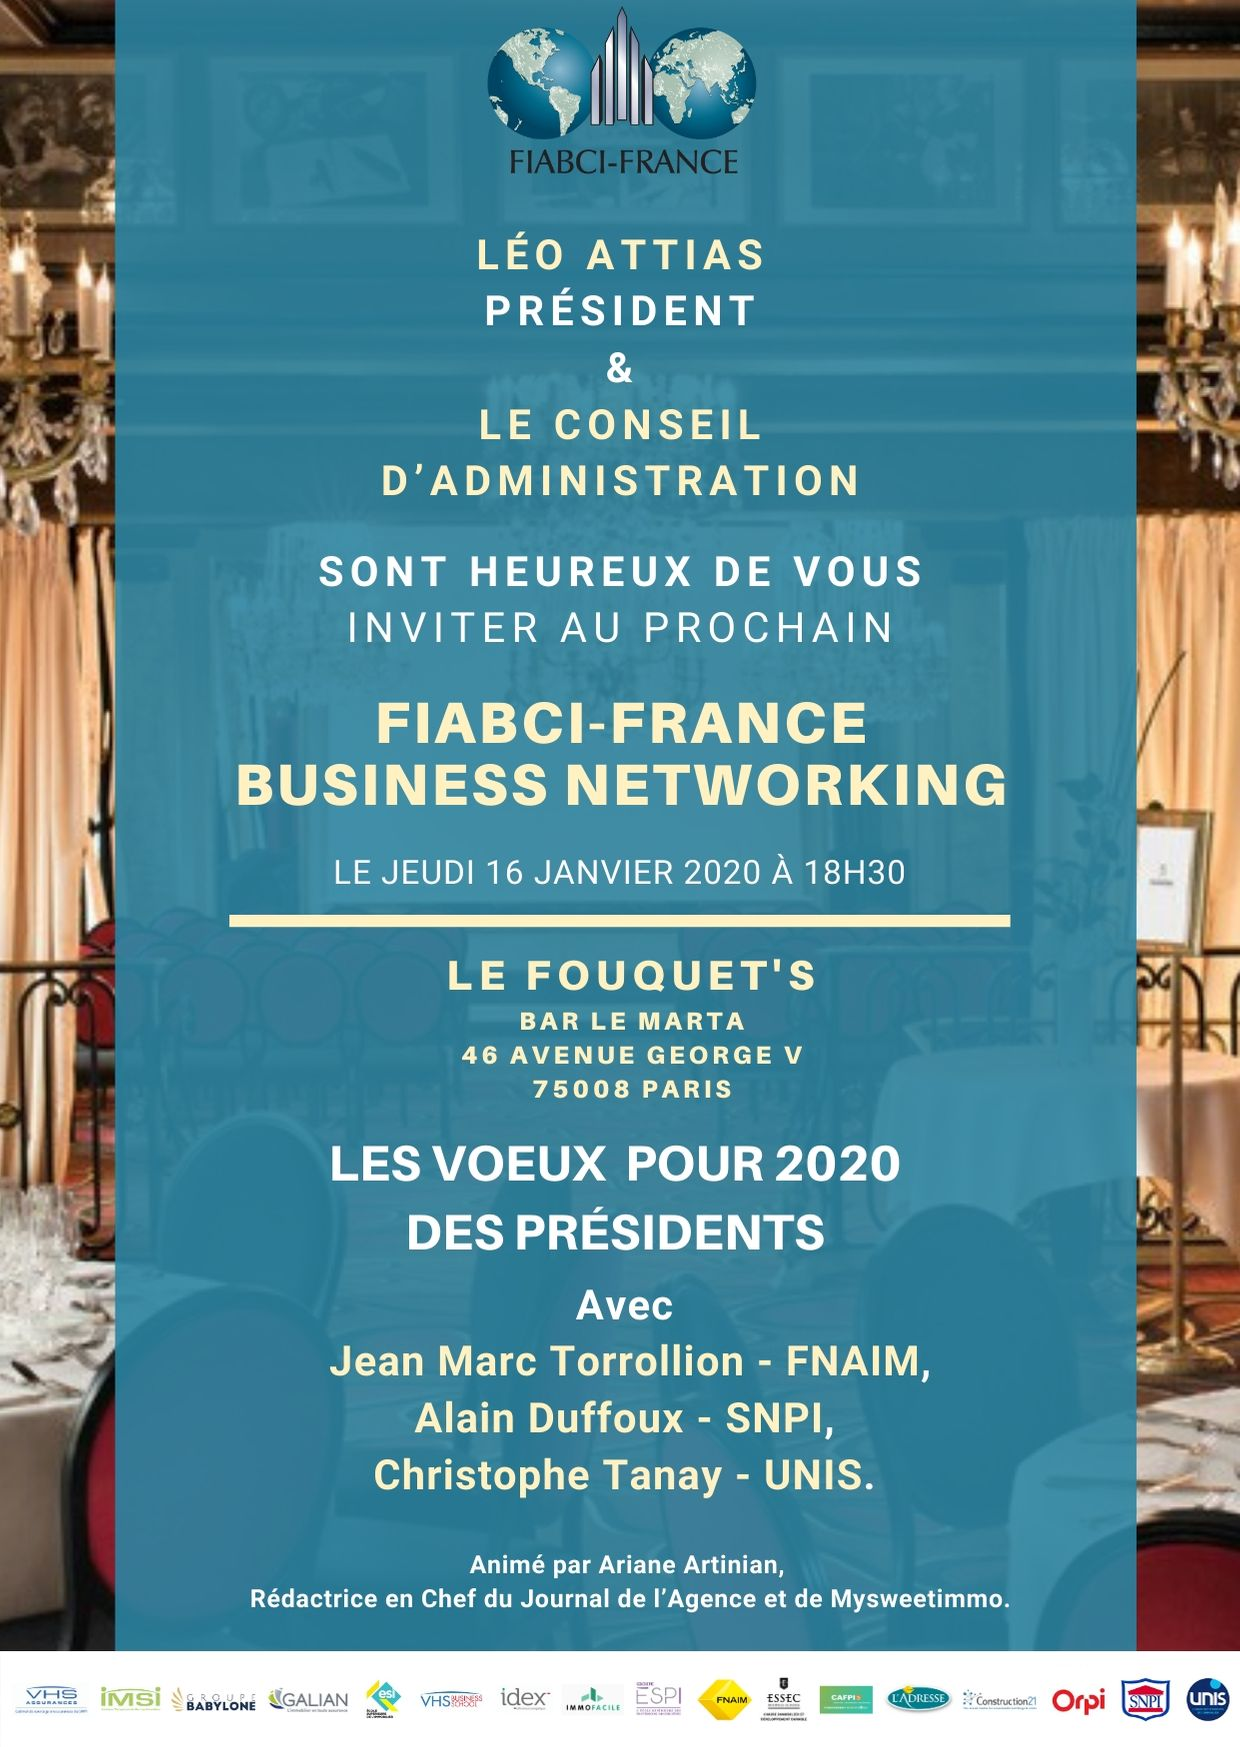 FIABCI France Business Networking du jeudi 16 janvier 2020